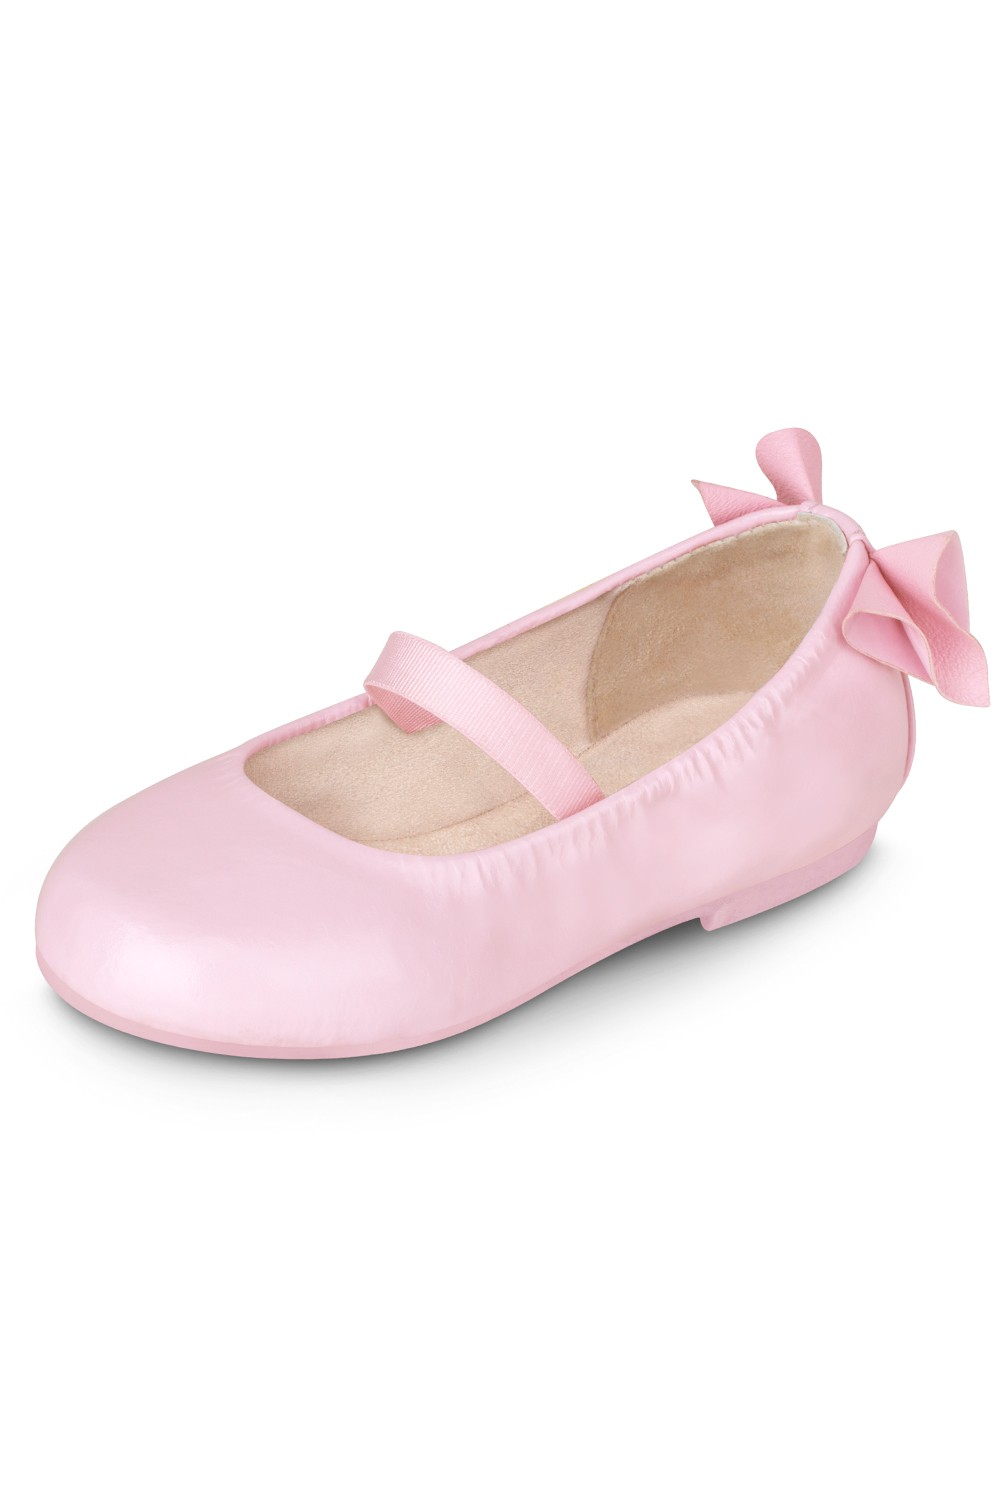 Sophie - Toddler Toddlers Fashion Shoes